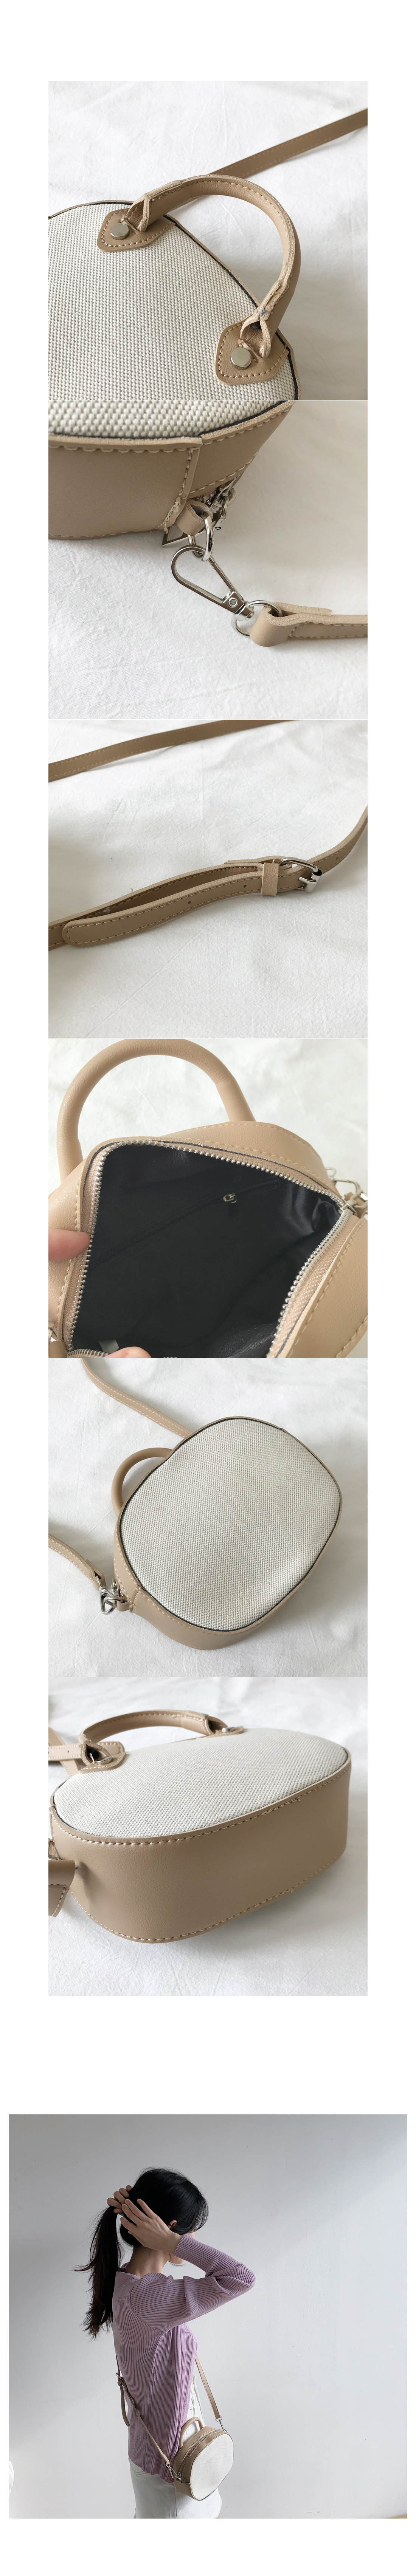 Poko Mini Tote & Cross Bag